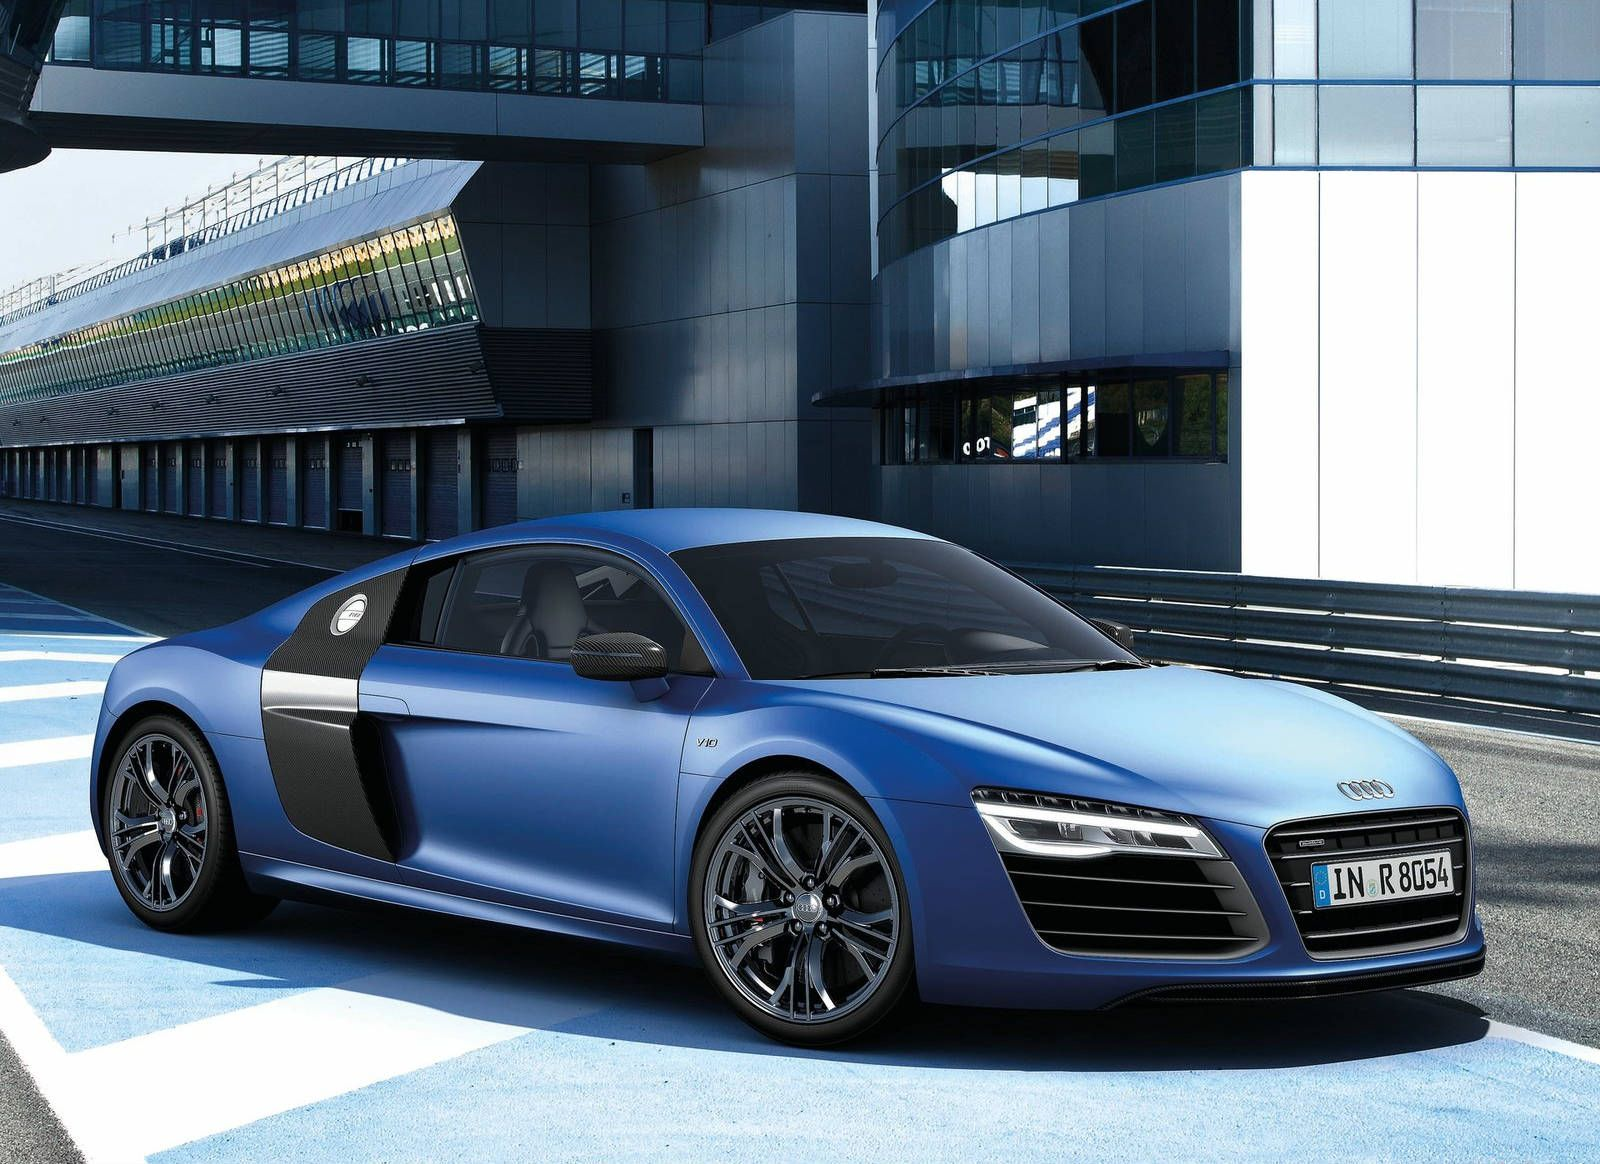 Lovely Audi R8 V10 Plus 2014 Front View   Cars Picture